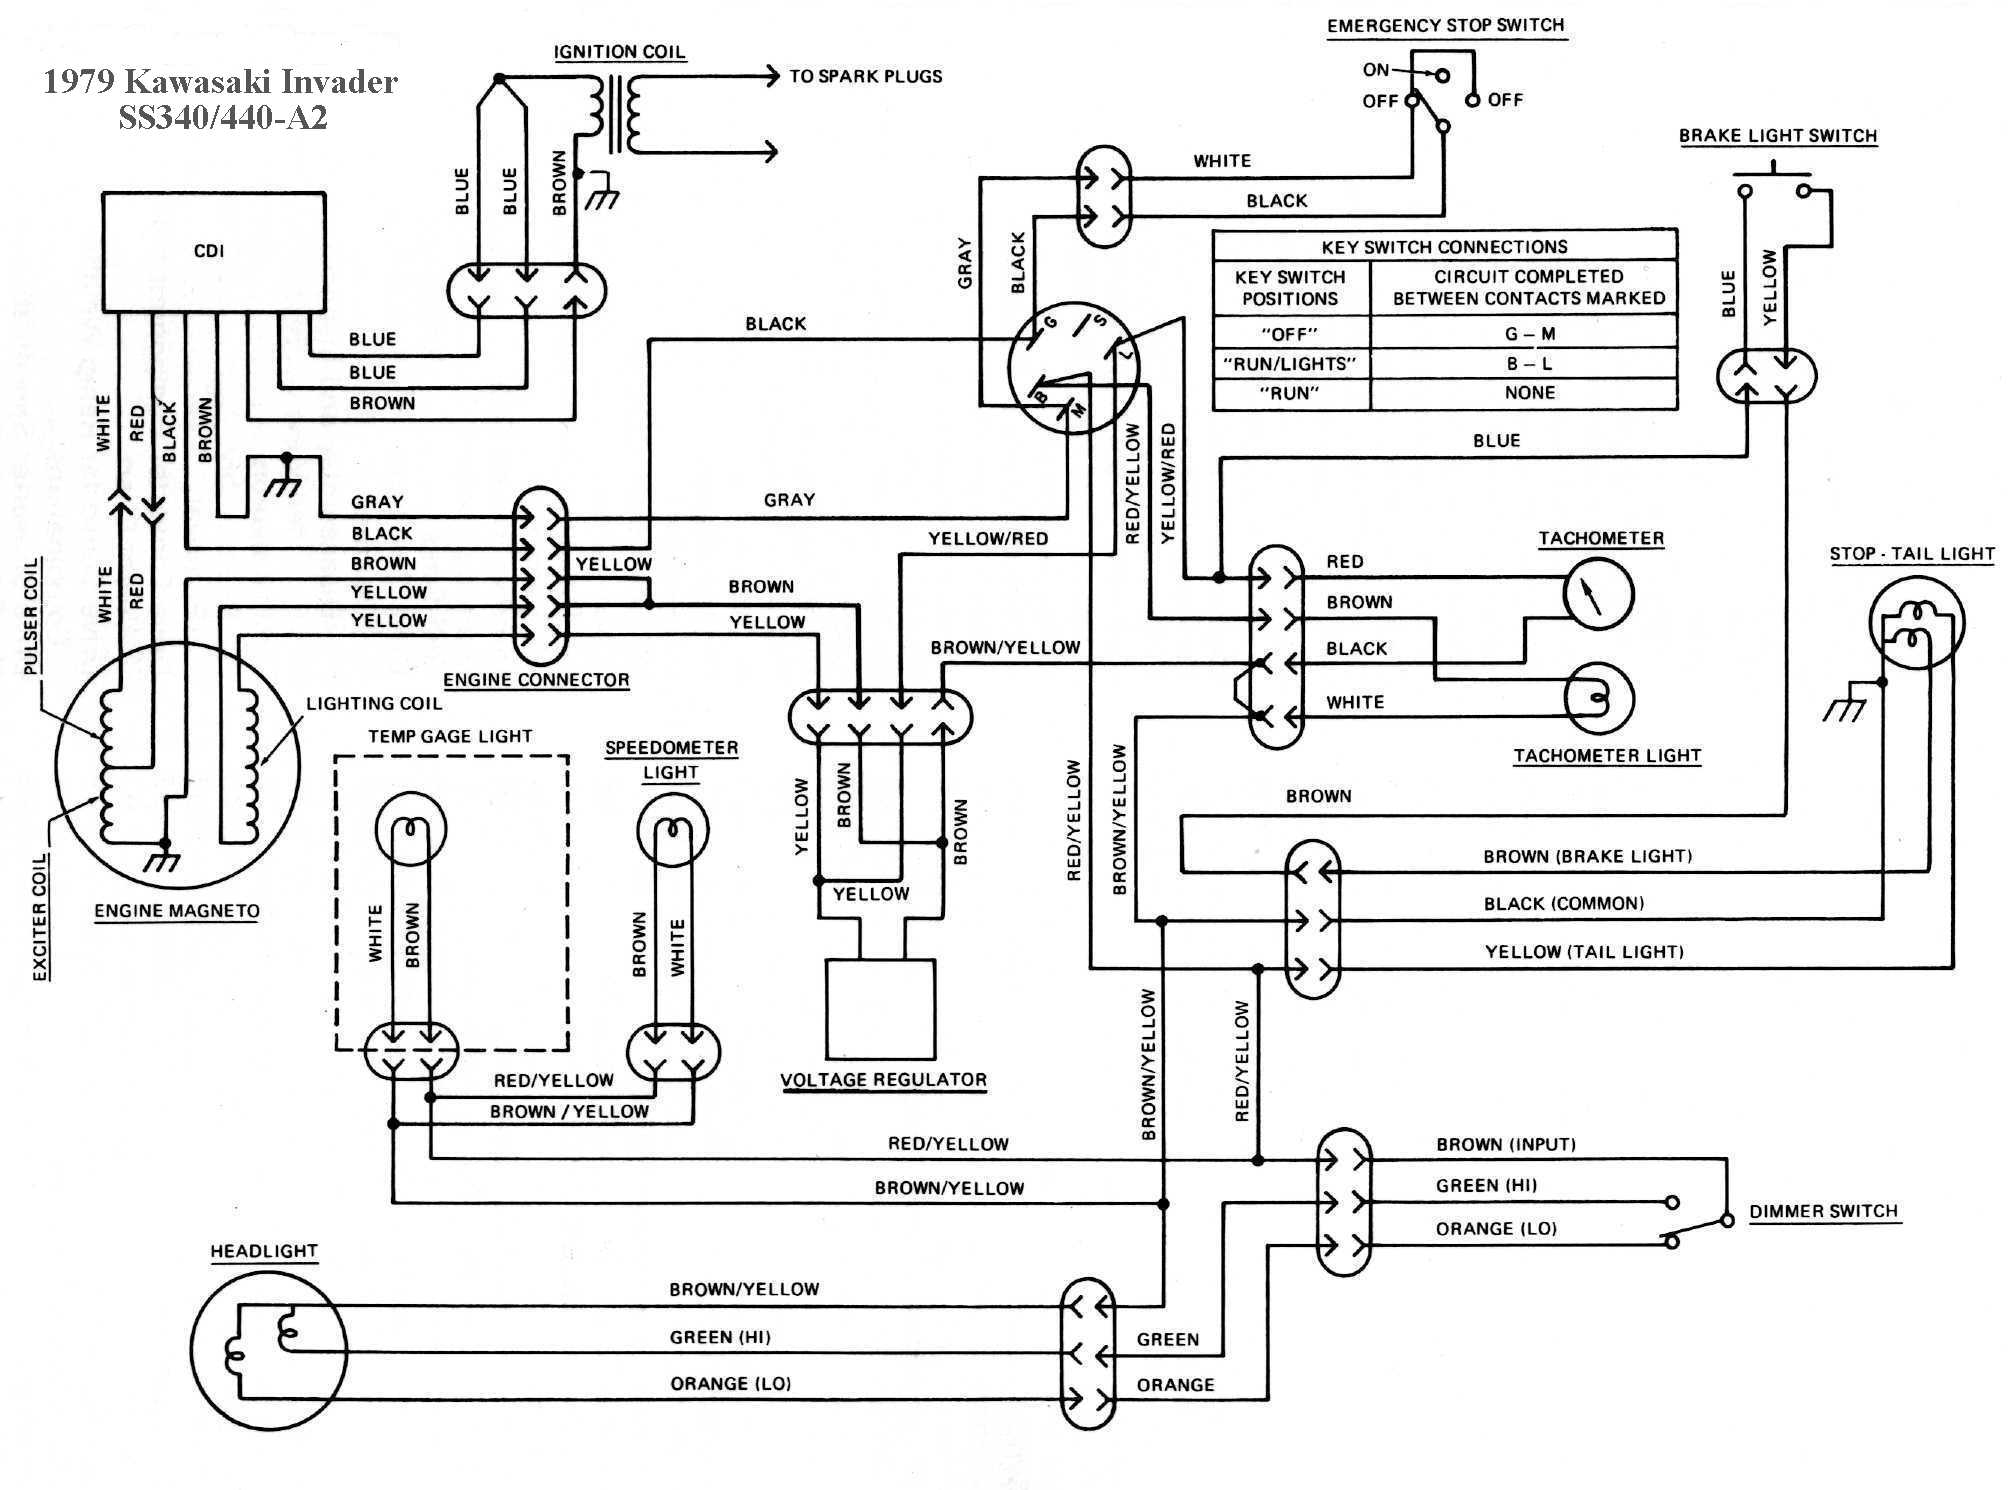 ss340a2 kawasaki invader snowmobile wiring diagrams 1981 kawasaki 440 ltd wiring diagram at n-0.co